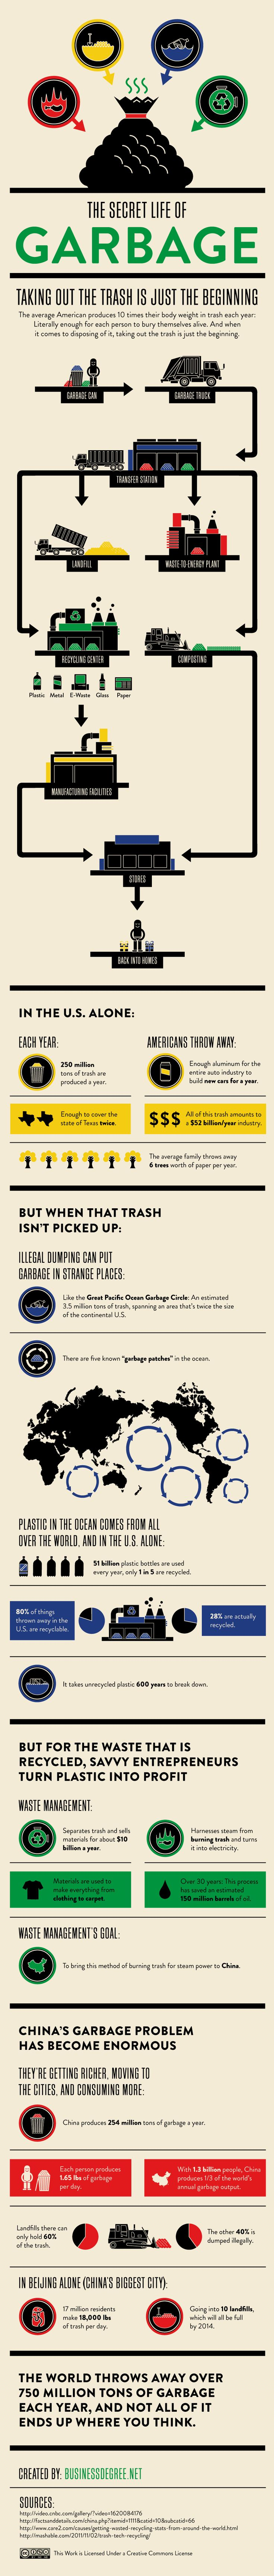 #Recycling infographic via America Recycles Day